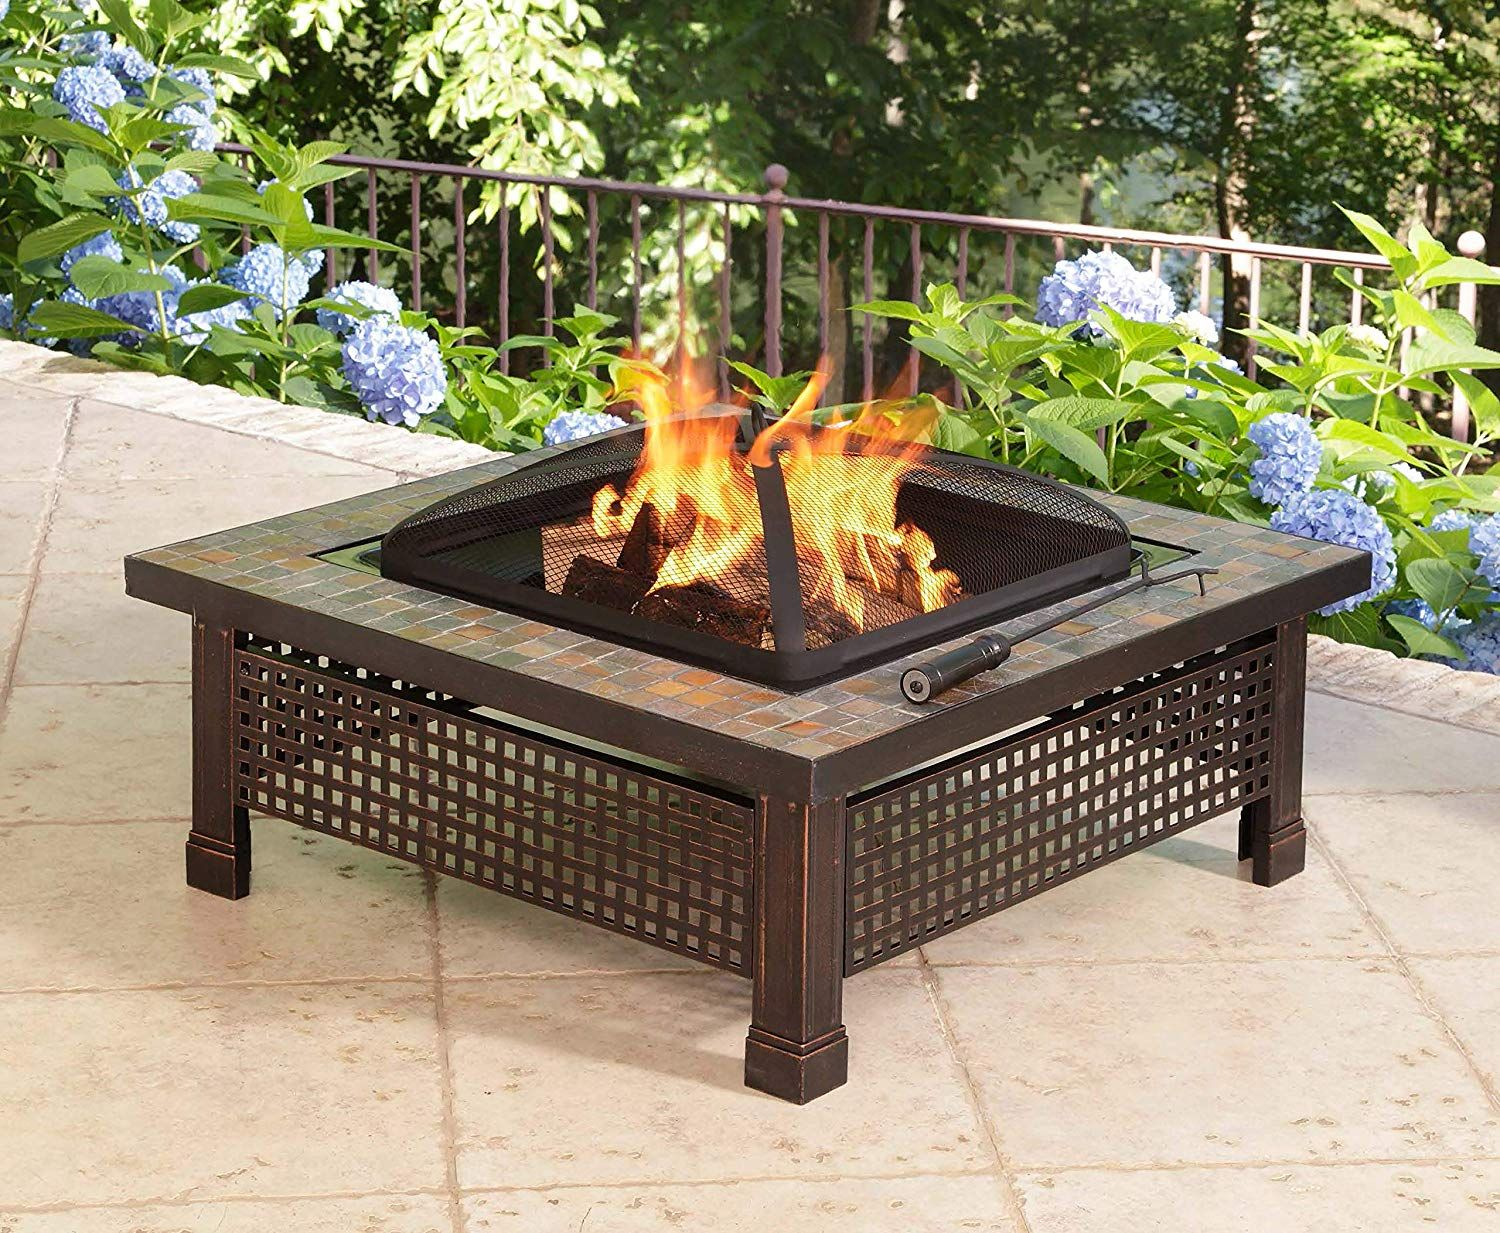 Outdoor Fire Pits – Enjoy the Elegance of the Outdoors With a Best Fire Pit